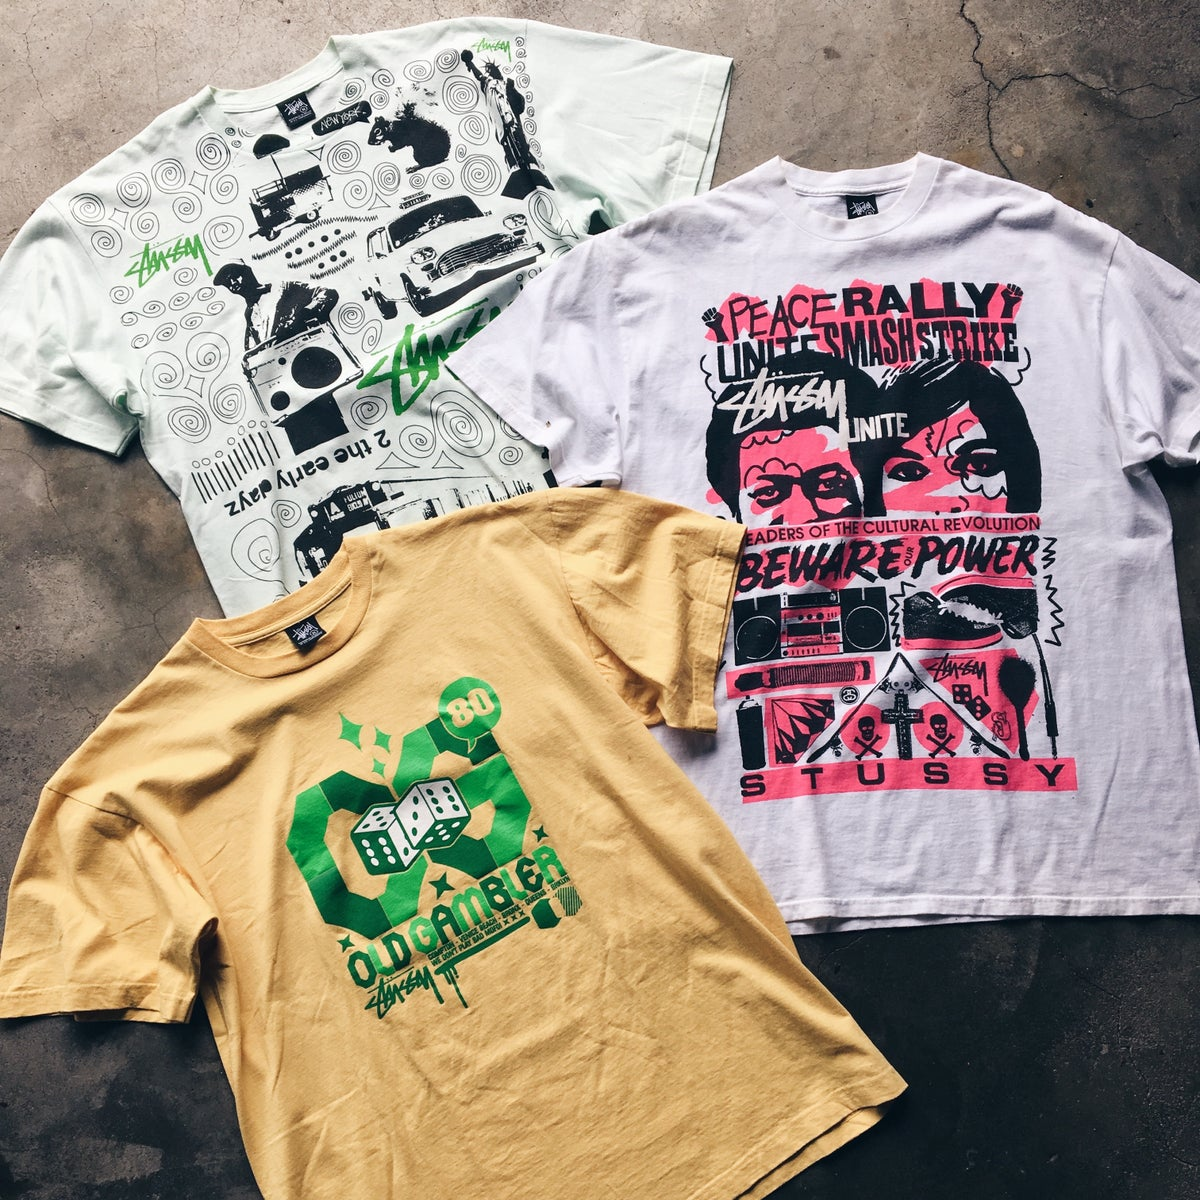 Image of Brand New Old Stock Mid 2000's Stussy Tees.